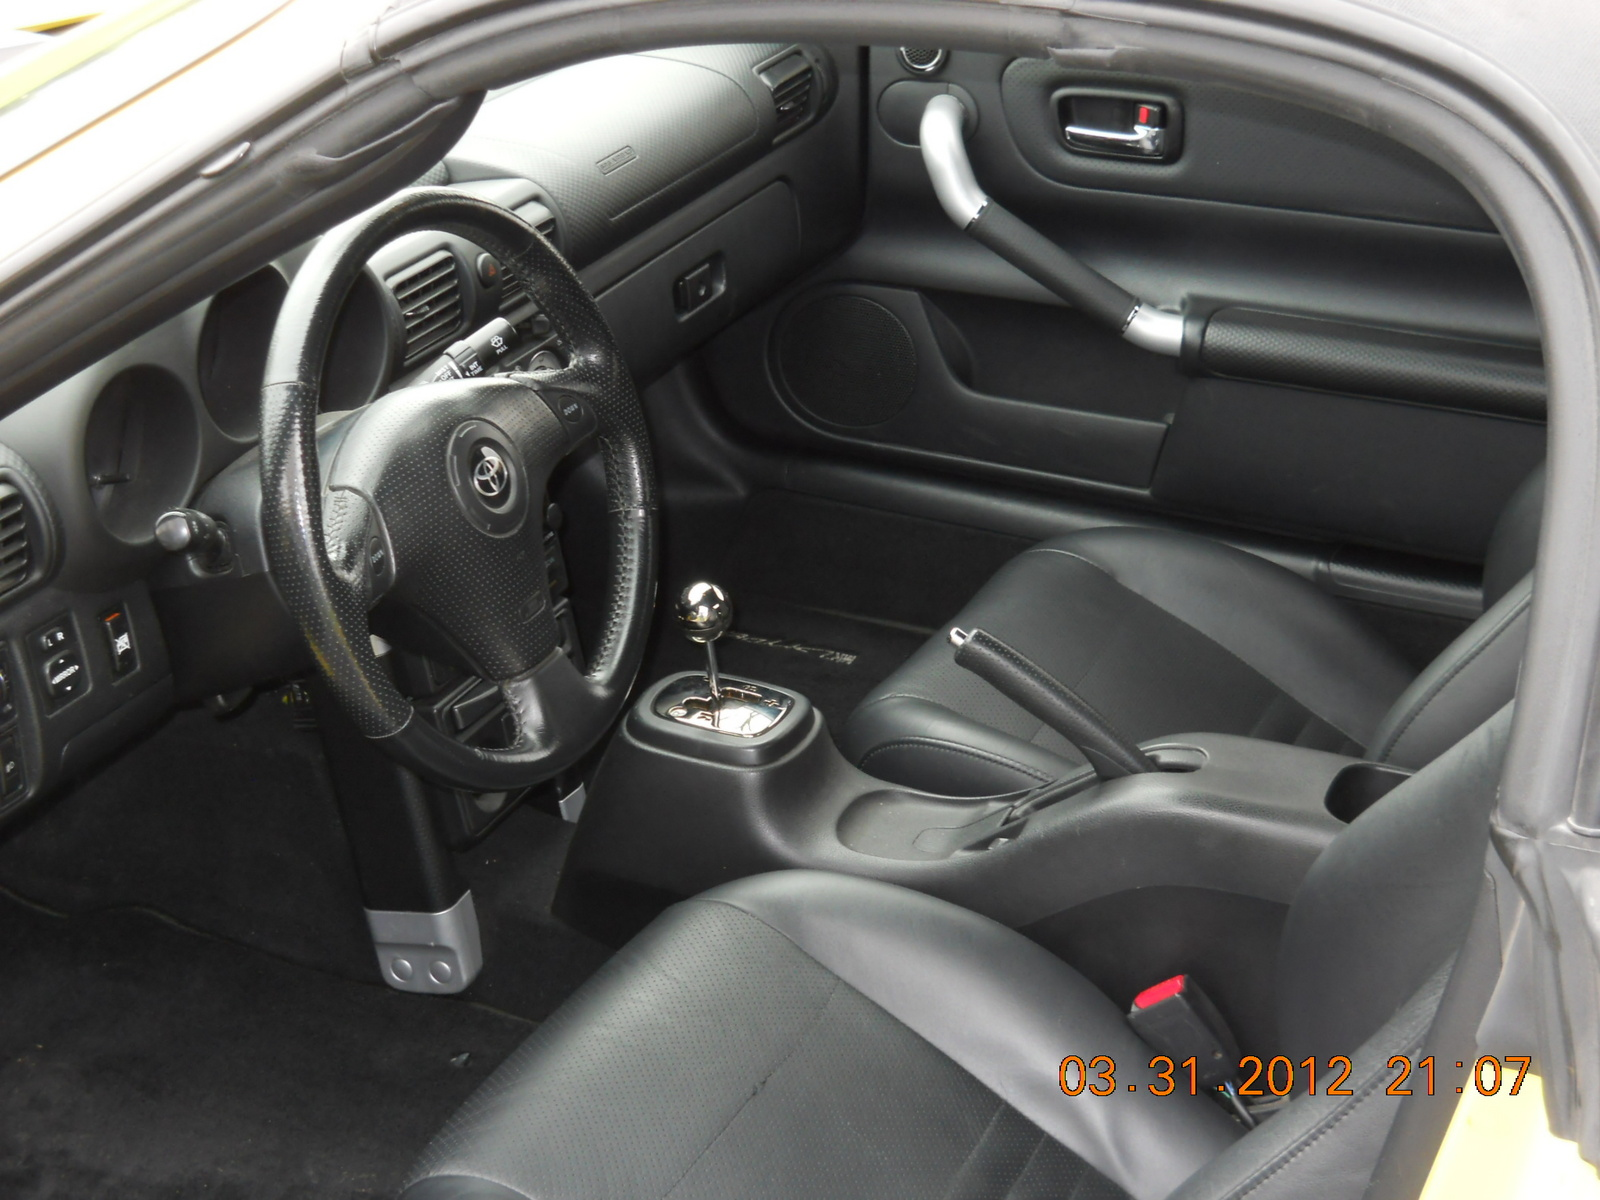 2003 toyota mr2 spyder interior pictures cargurus for Mr trim convertible tops and interiors